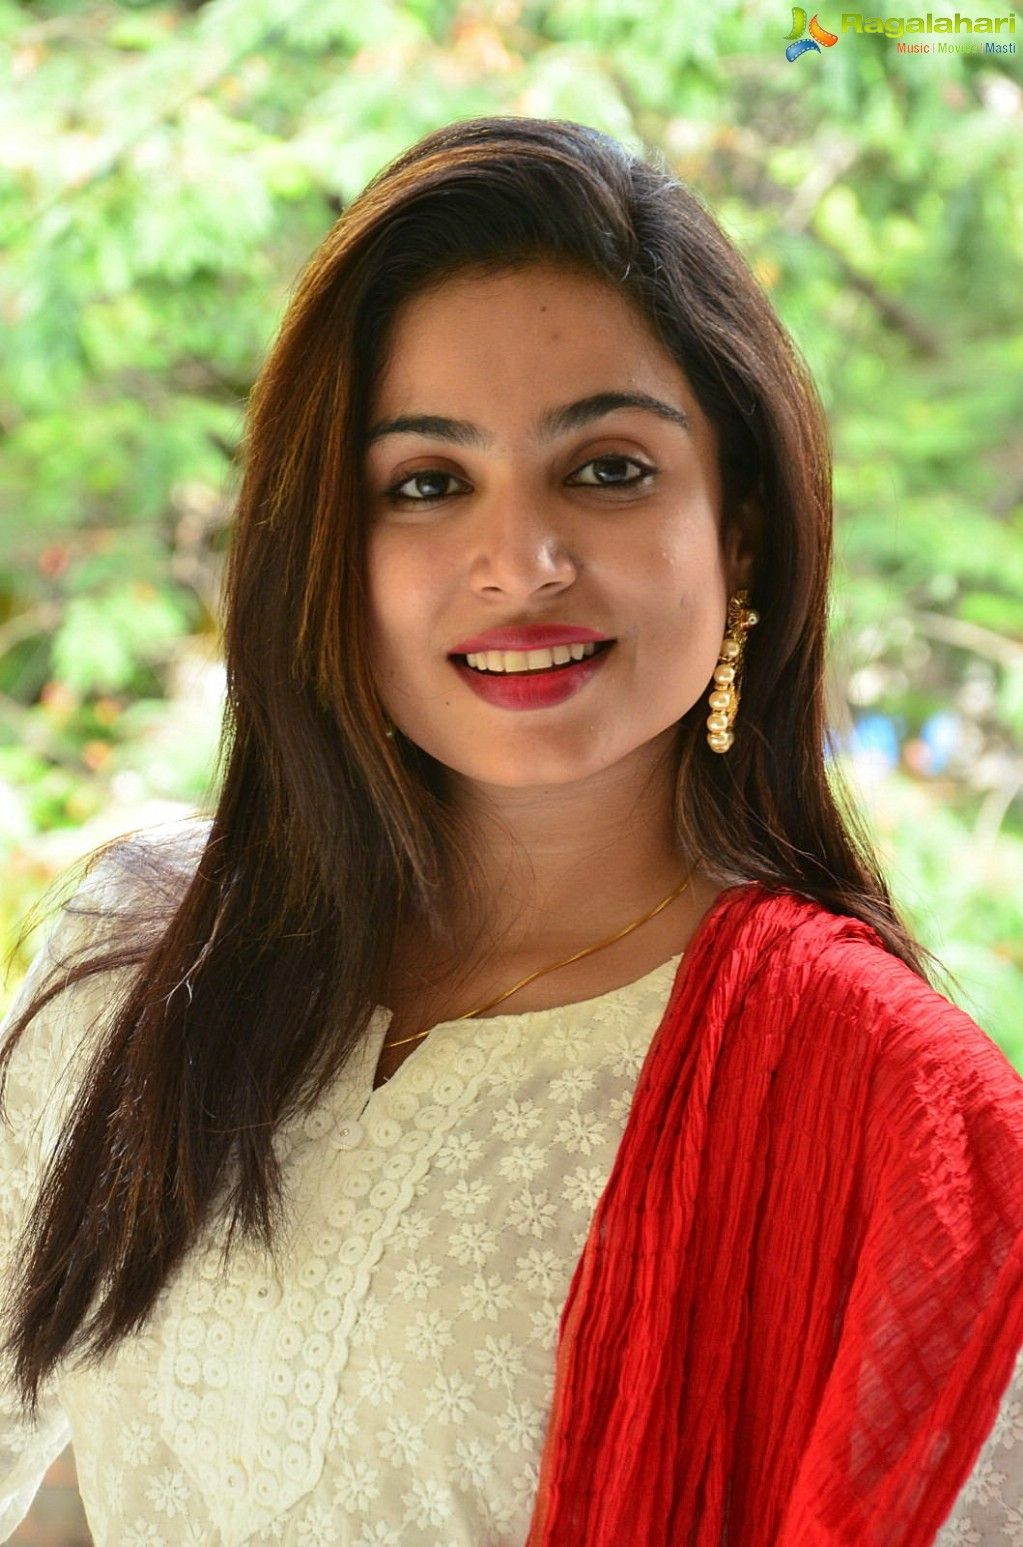 Vrushali Gosavi Image 4 Telugu Heroines Wallpapers Images Photos Pictures Hd Wallpapers Photo Actresses Girl Number For Friendship